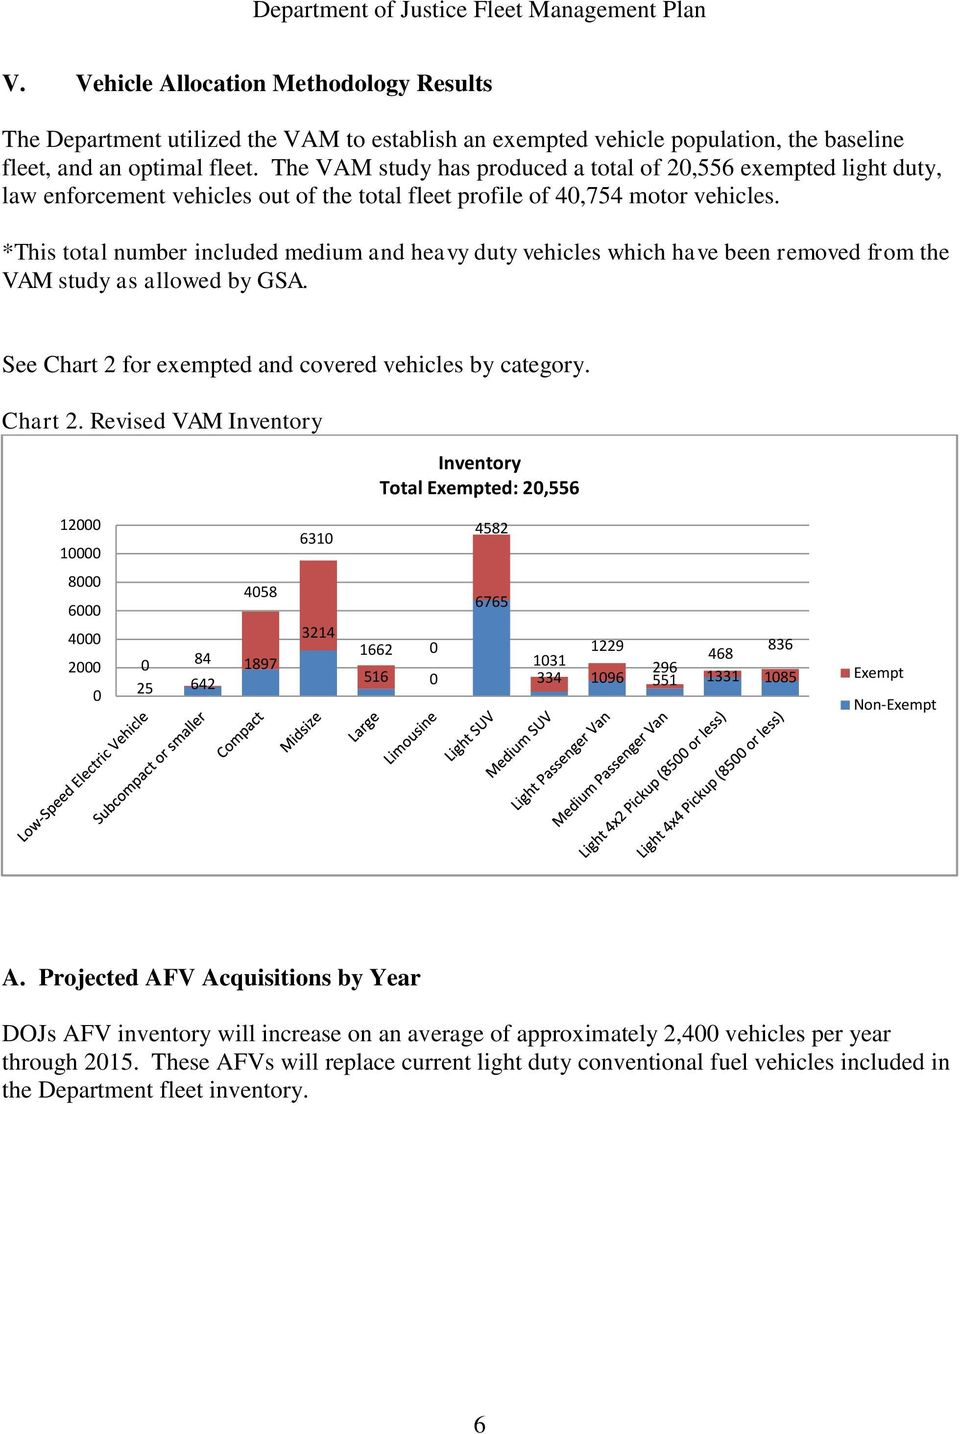 *This total number included medium and heavy duty vehicles which have been removed from the VAM study as allowed by GSA. See Chart 2